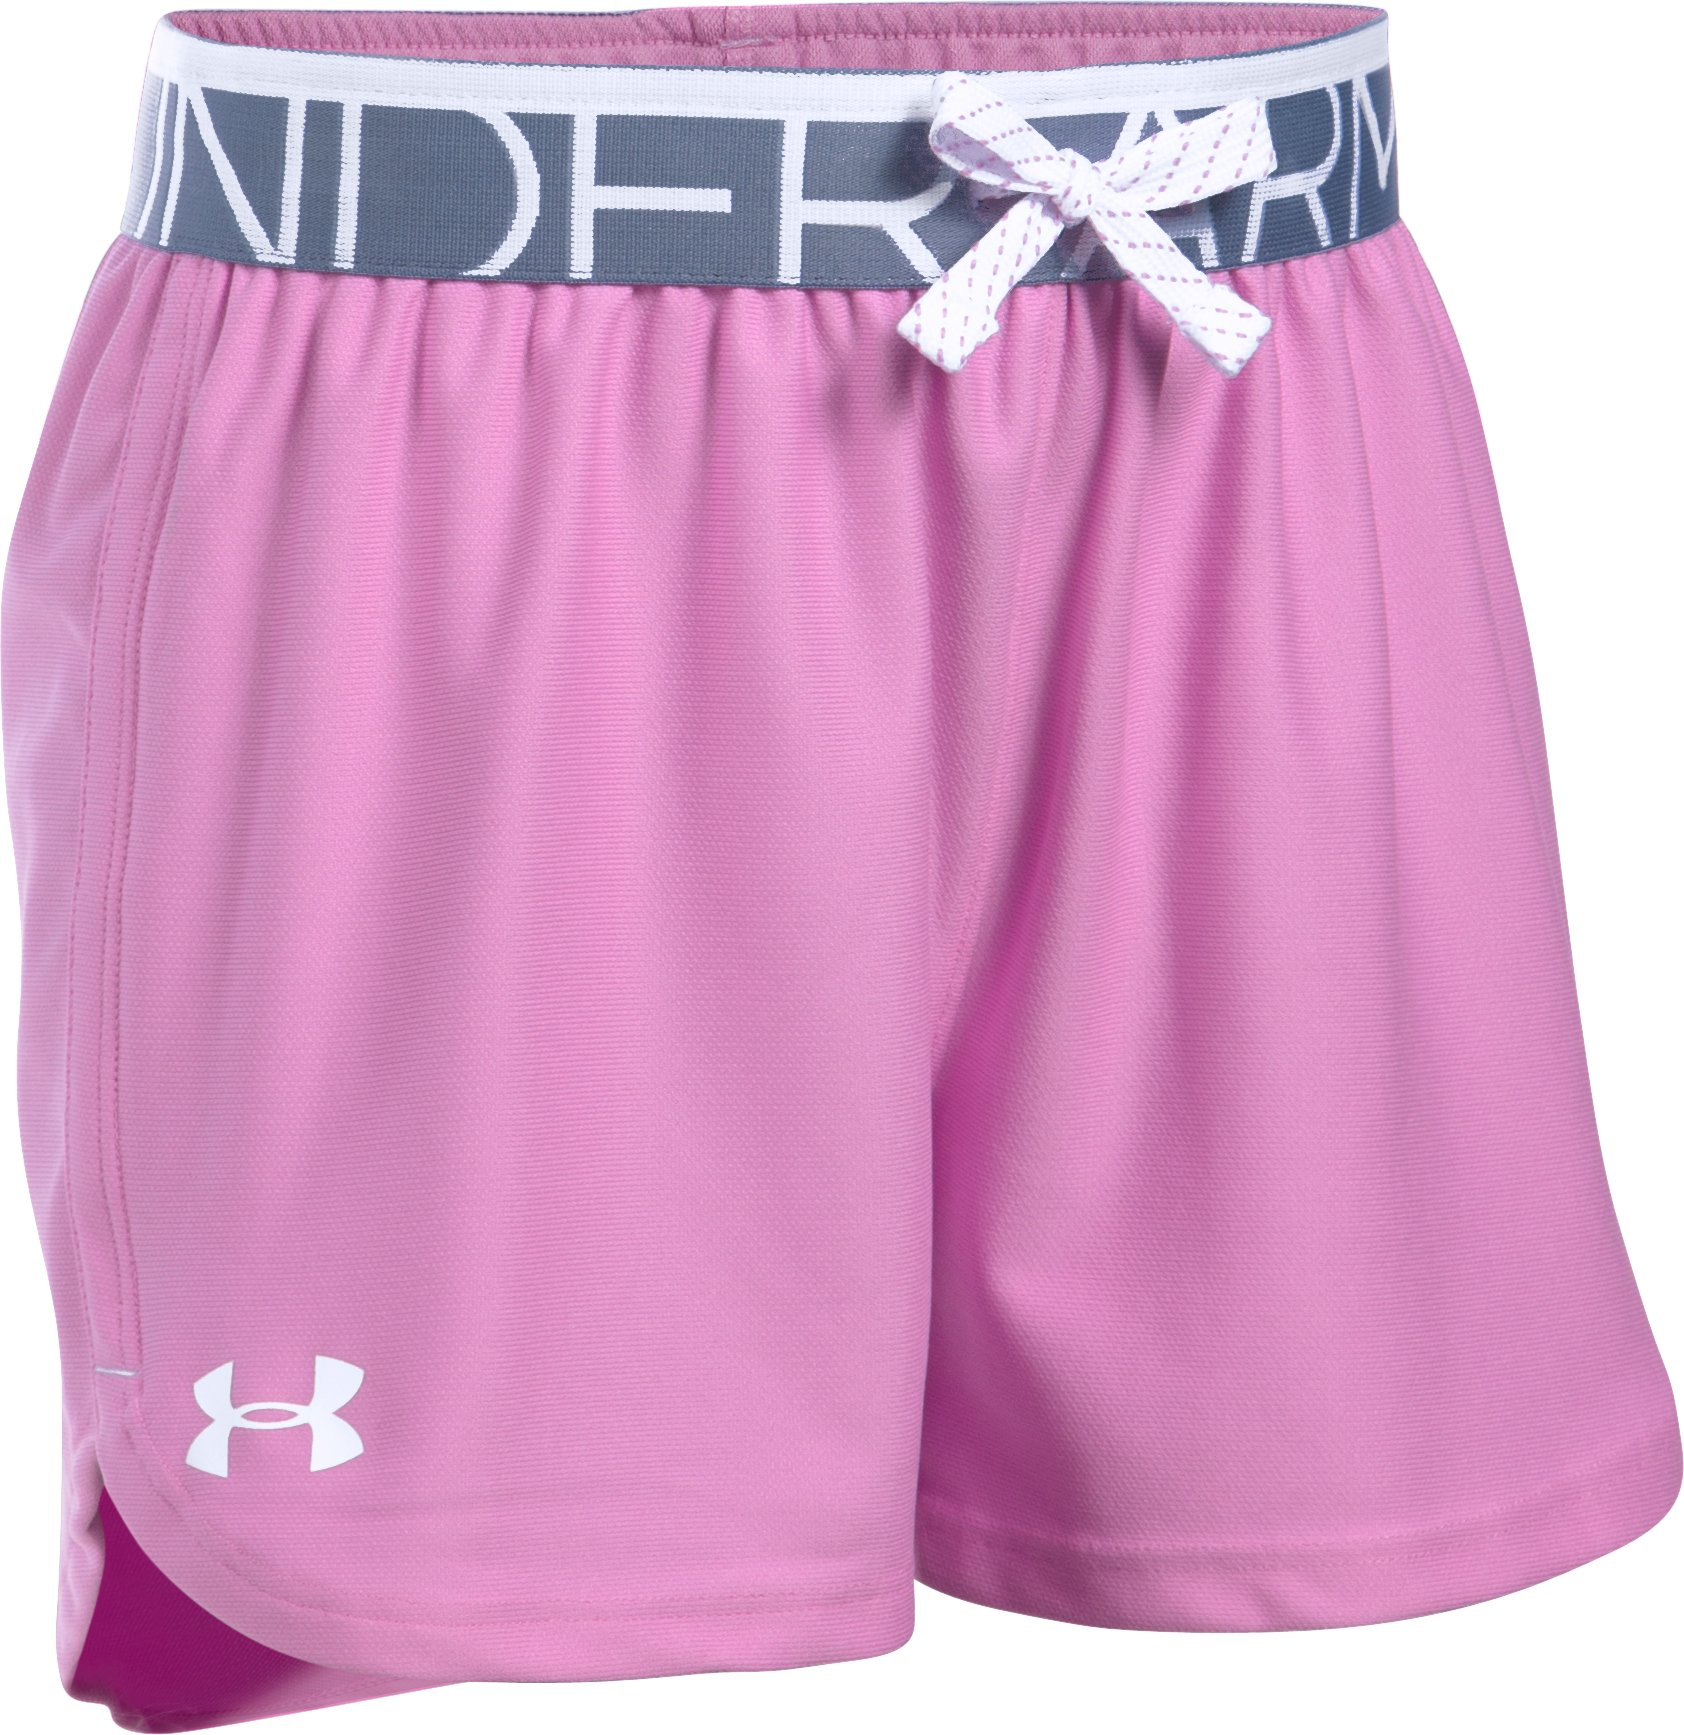 Girls' UA Play Up Shorts - 3 for $35, VERVE VIOLET